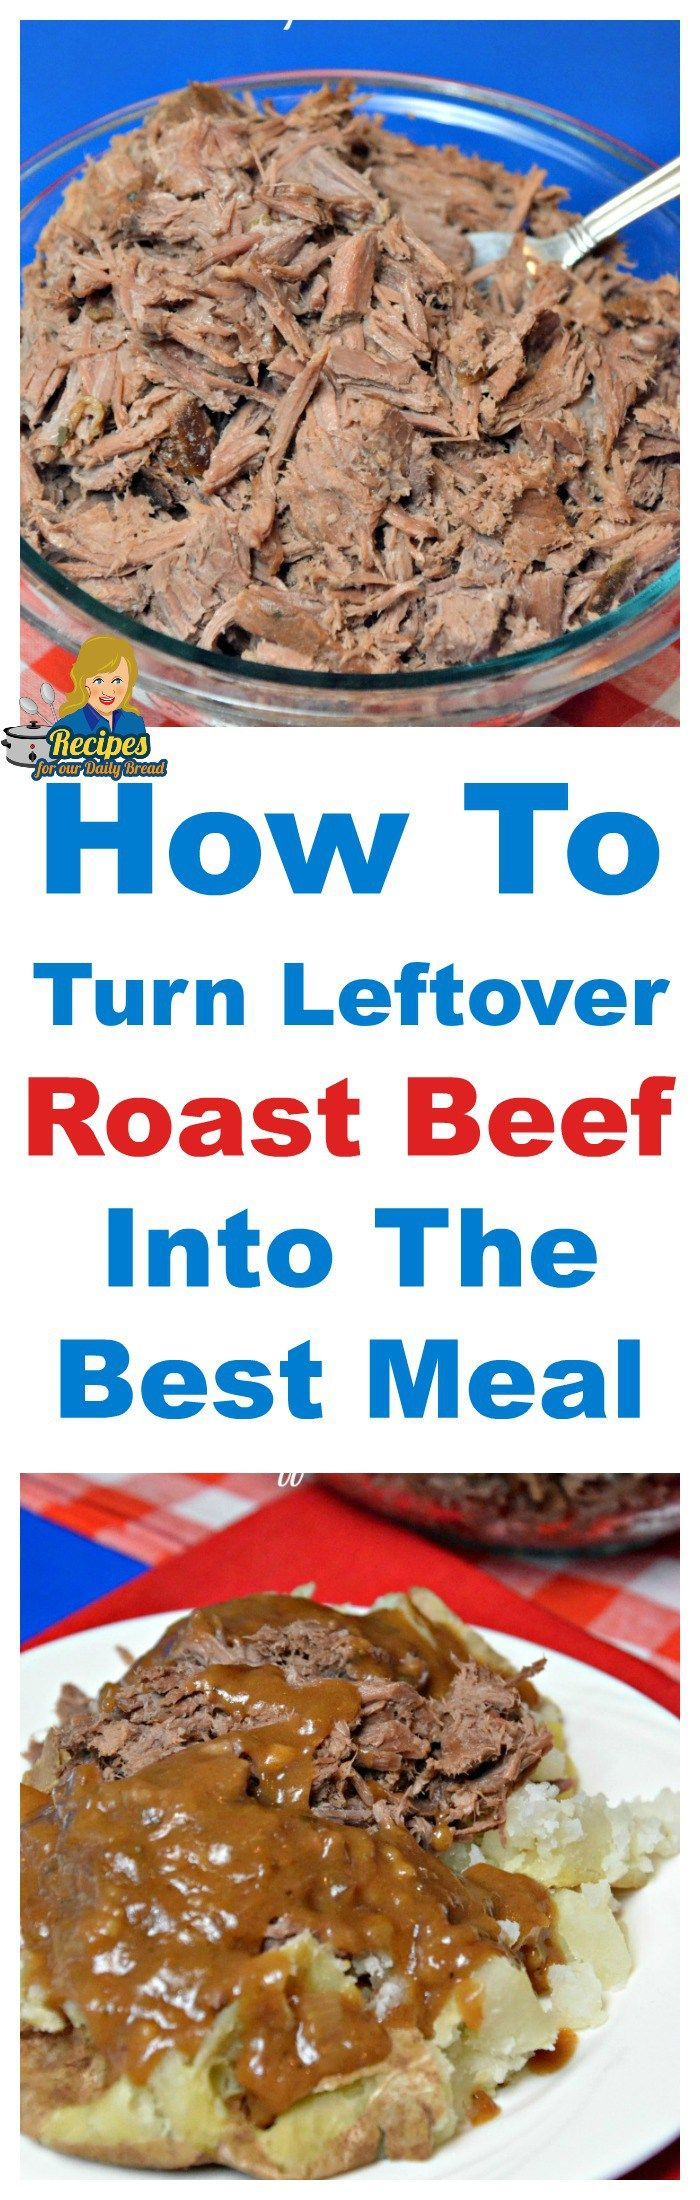 how to cook leftover roast beef